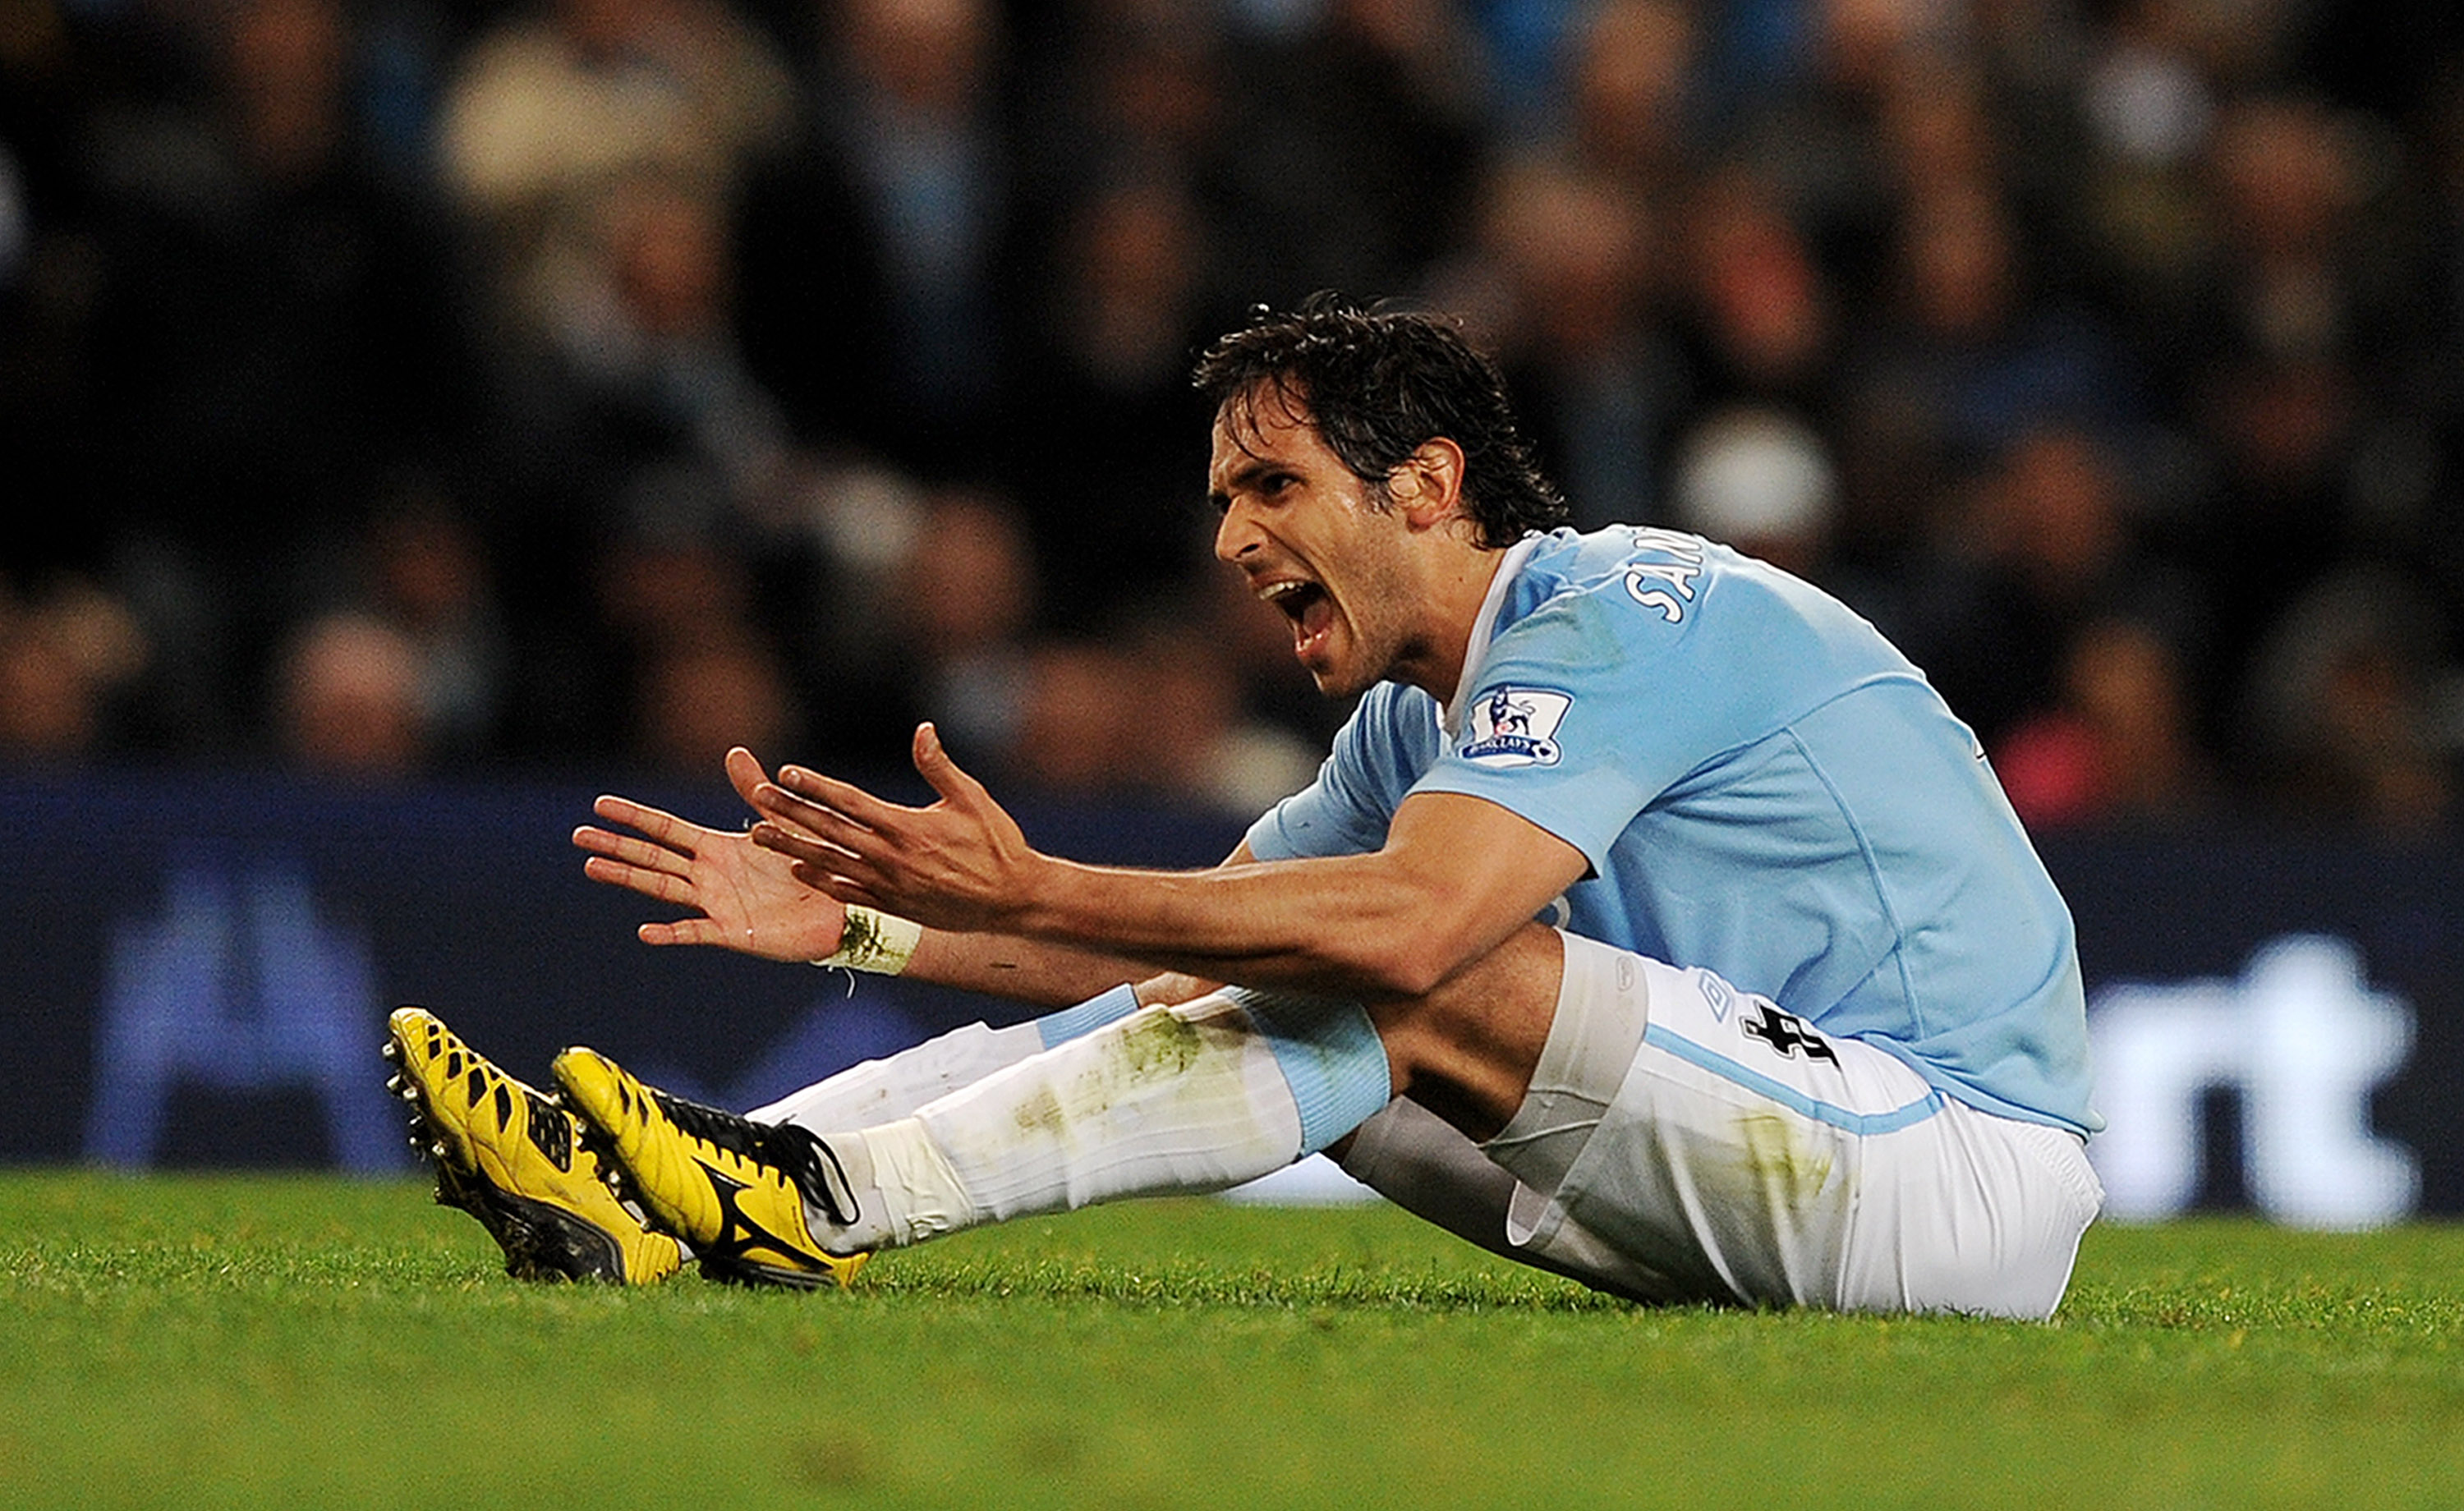 MANCHESTER, ENGLAND - MARCH 24:  Roque Santa Cruz of Manchester City shows his fustration during the Barclays Premiership match between Manchester City and Everton at the City of Manchester Stadium on March 24, 2010 in Manchester, England.  (Photo by Mich